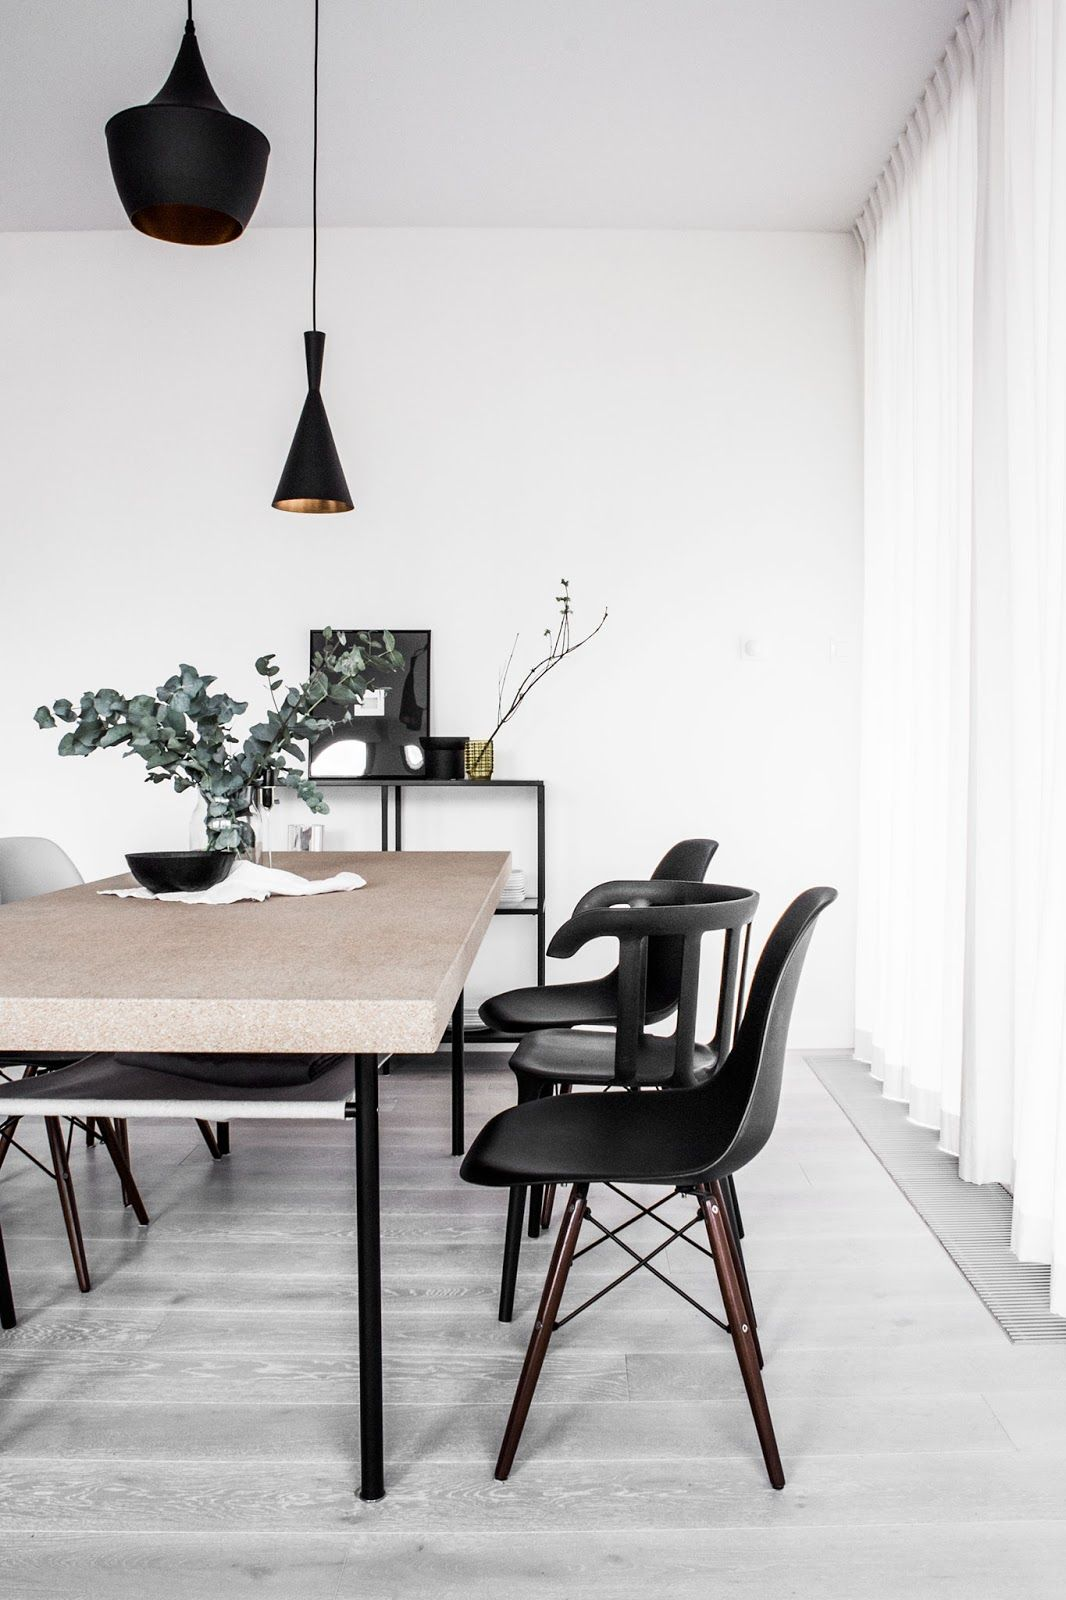 Cork Dining Table Tom Dixon Lamps Black Eames Chair Nordic Interior Dining Chair Makeover Home Decor Decor